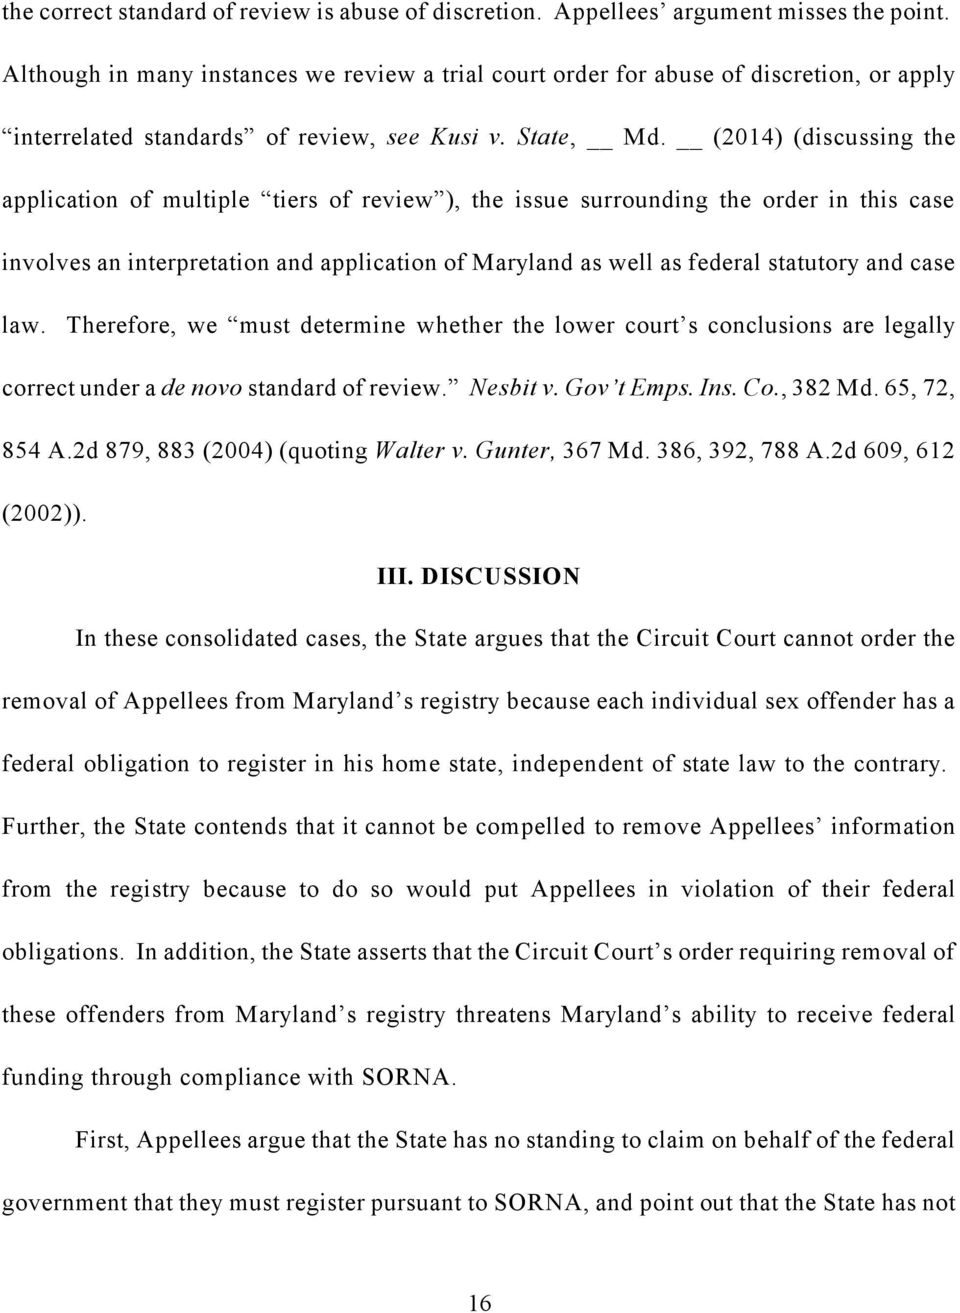 (2014) (discussing the application of multiple tiers of review ), the issue surrounding the order in this case involves an interpretation and application of Maryland as well as federal statutory and